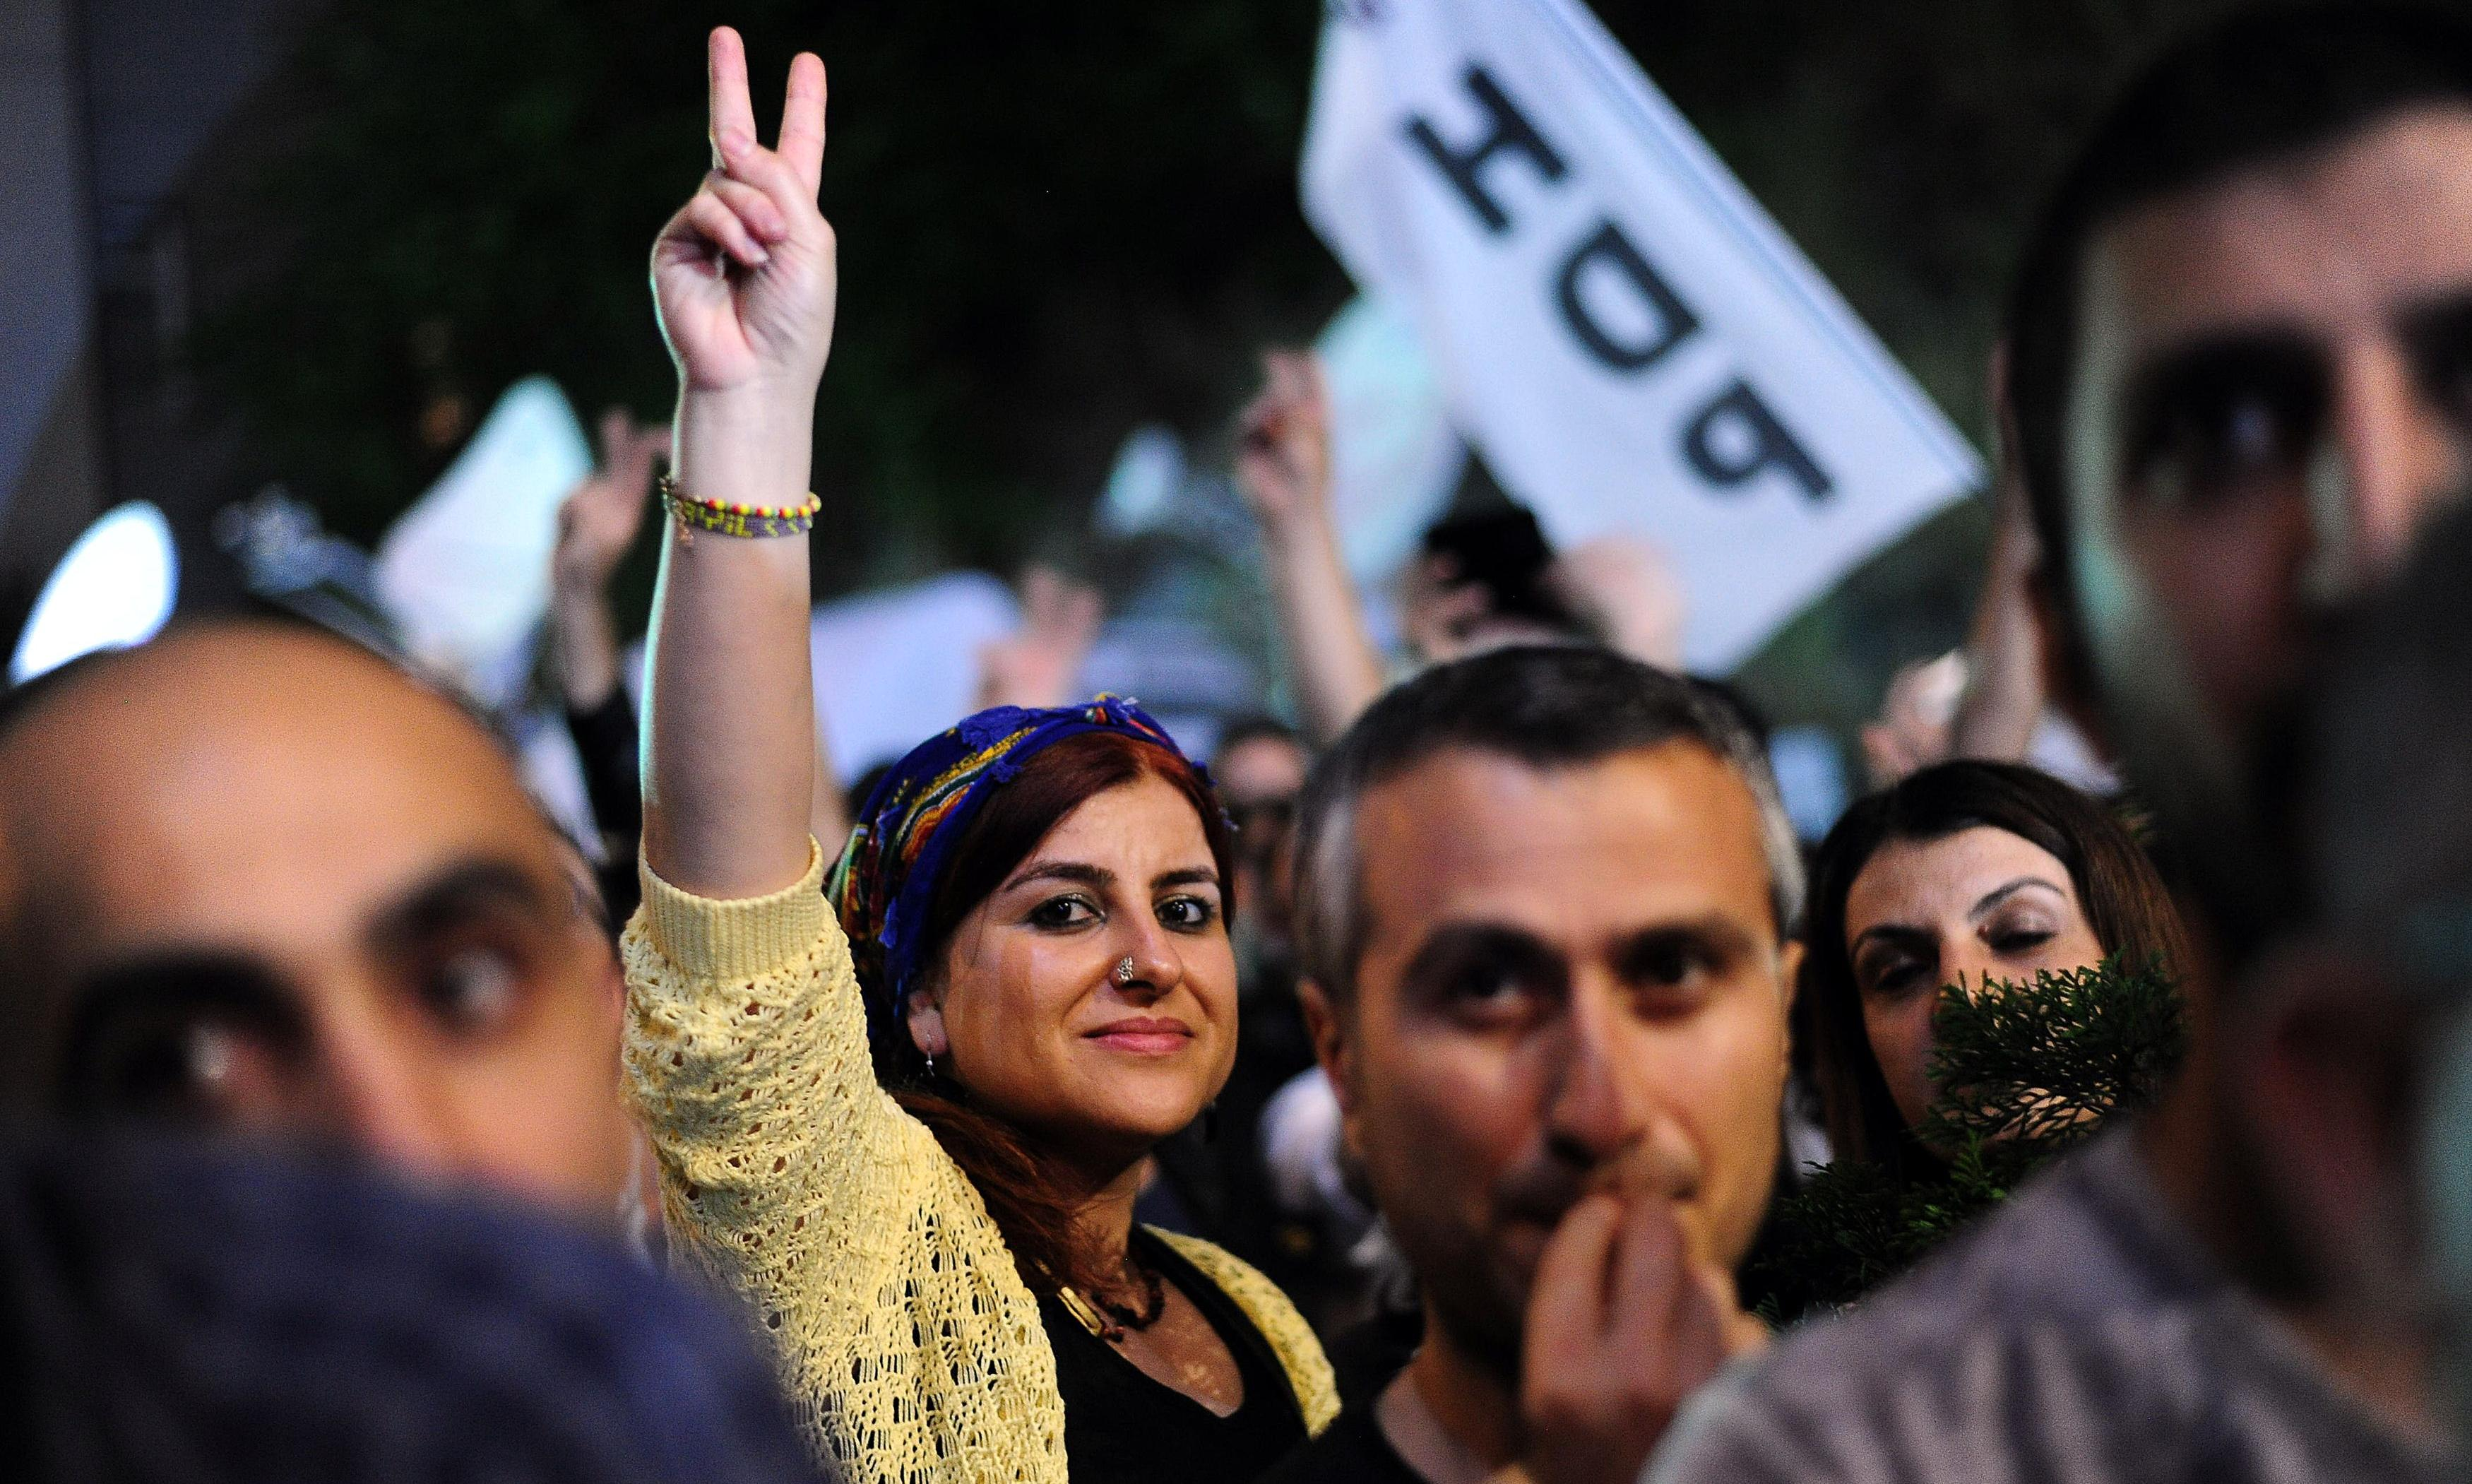 Polls show the pro-Kurdish HDP as third political power